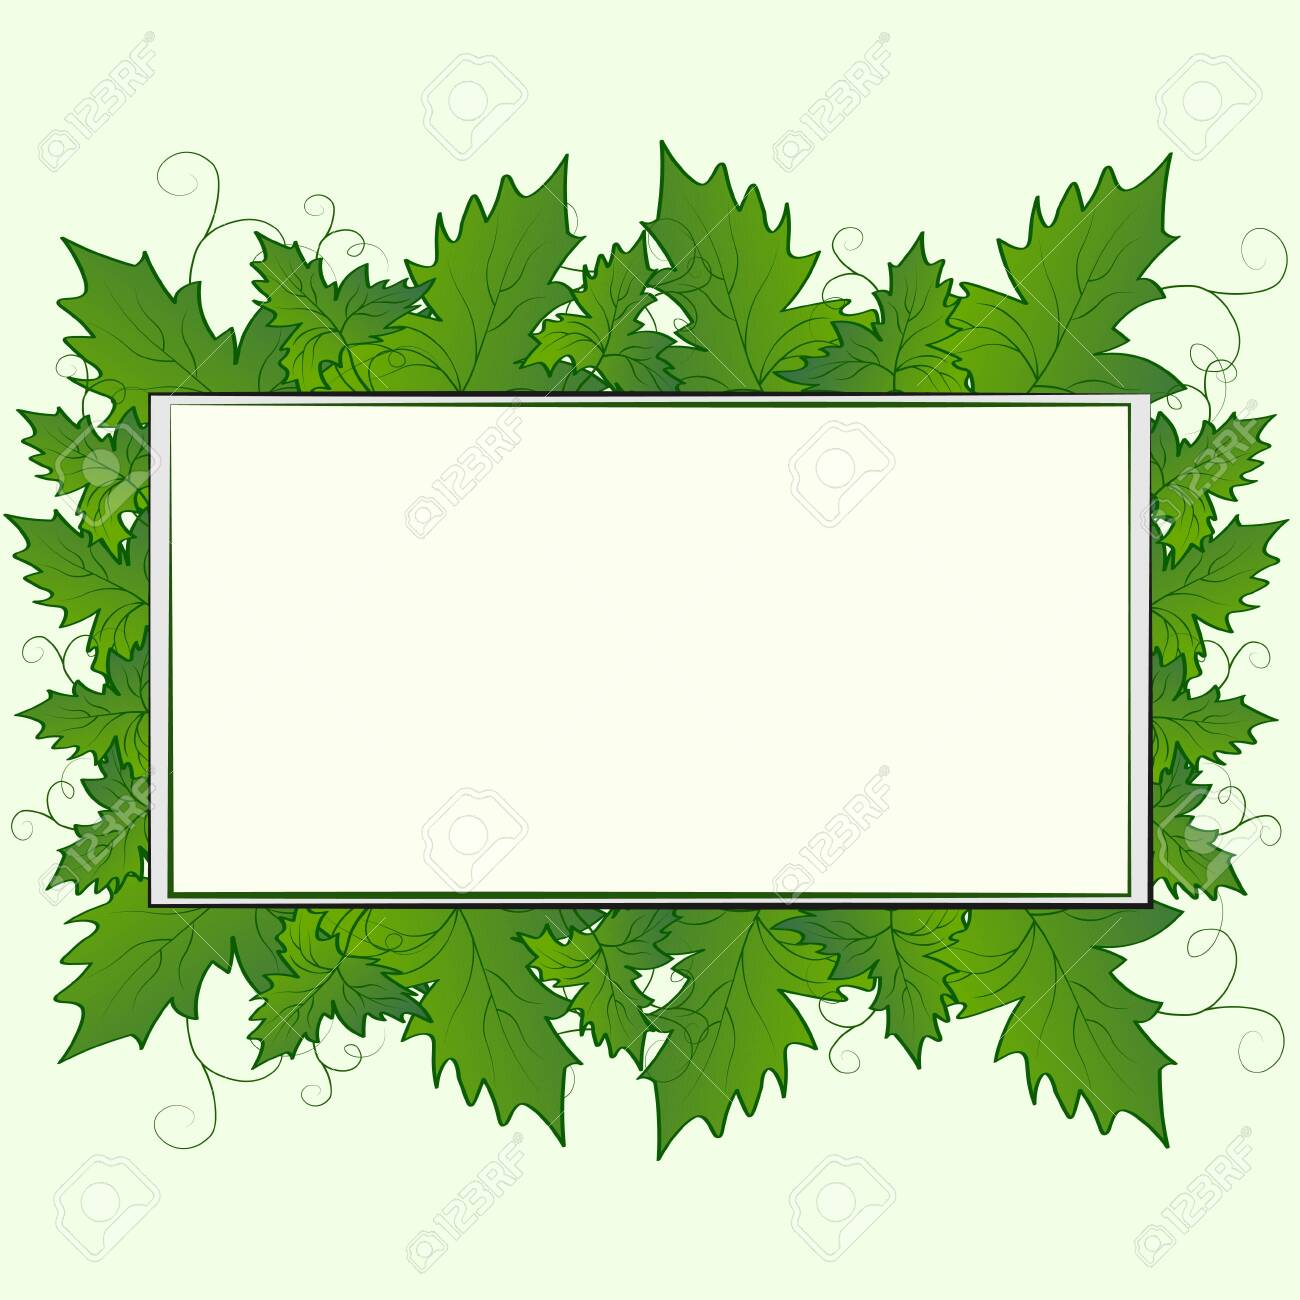 Abstract Spring Summer Natural Floral Background With Grape Leaves Royalty Free Cliparts Vectors And Stock Illustration Image 141348402